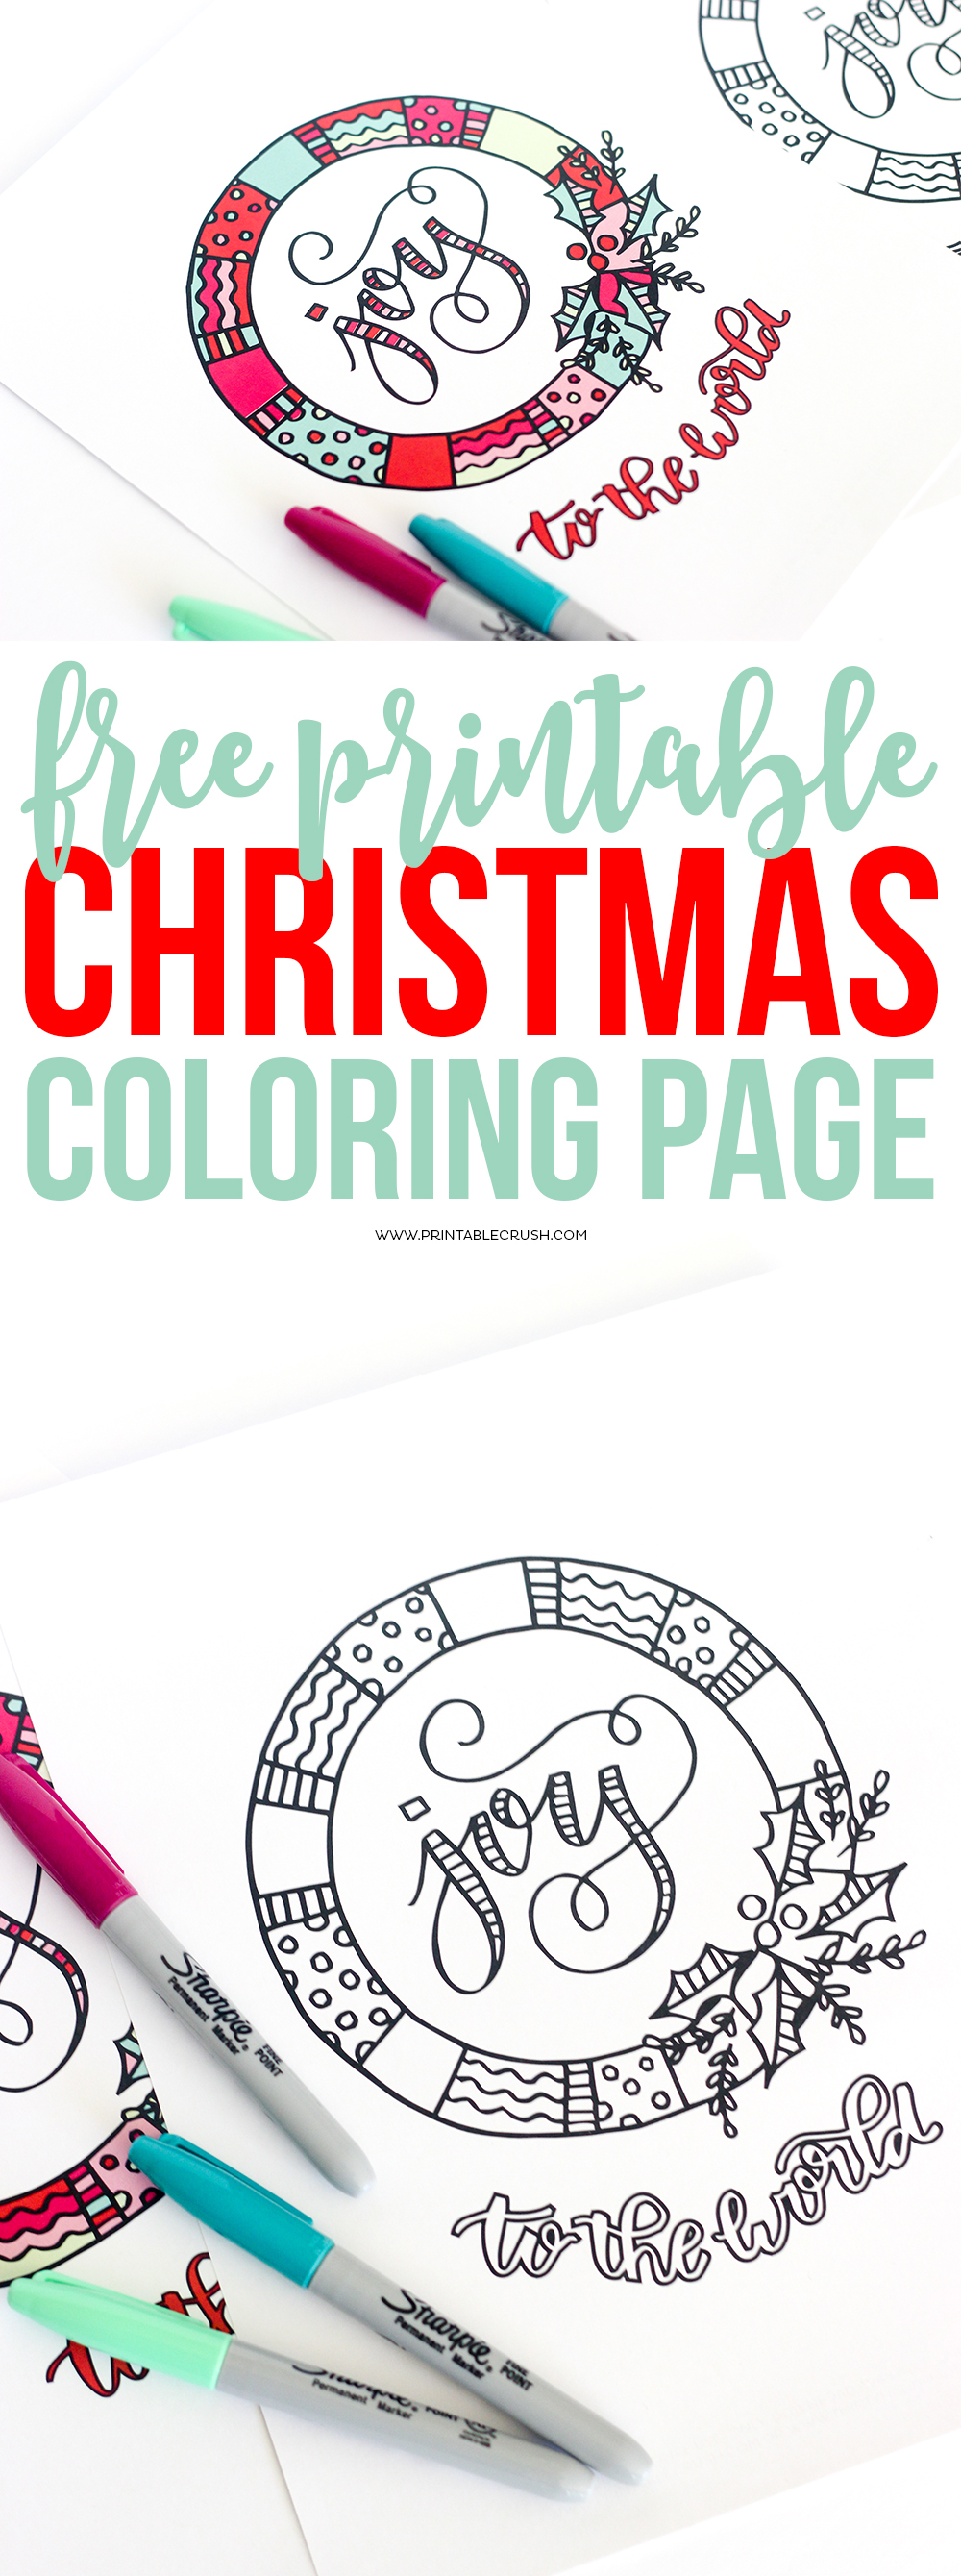 print off some of these free printable christmas coloring page for a fun activity for kids